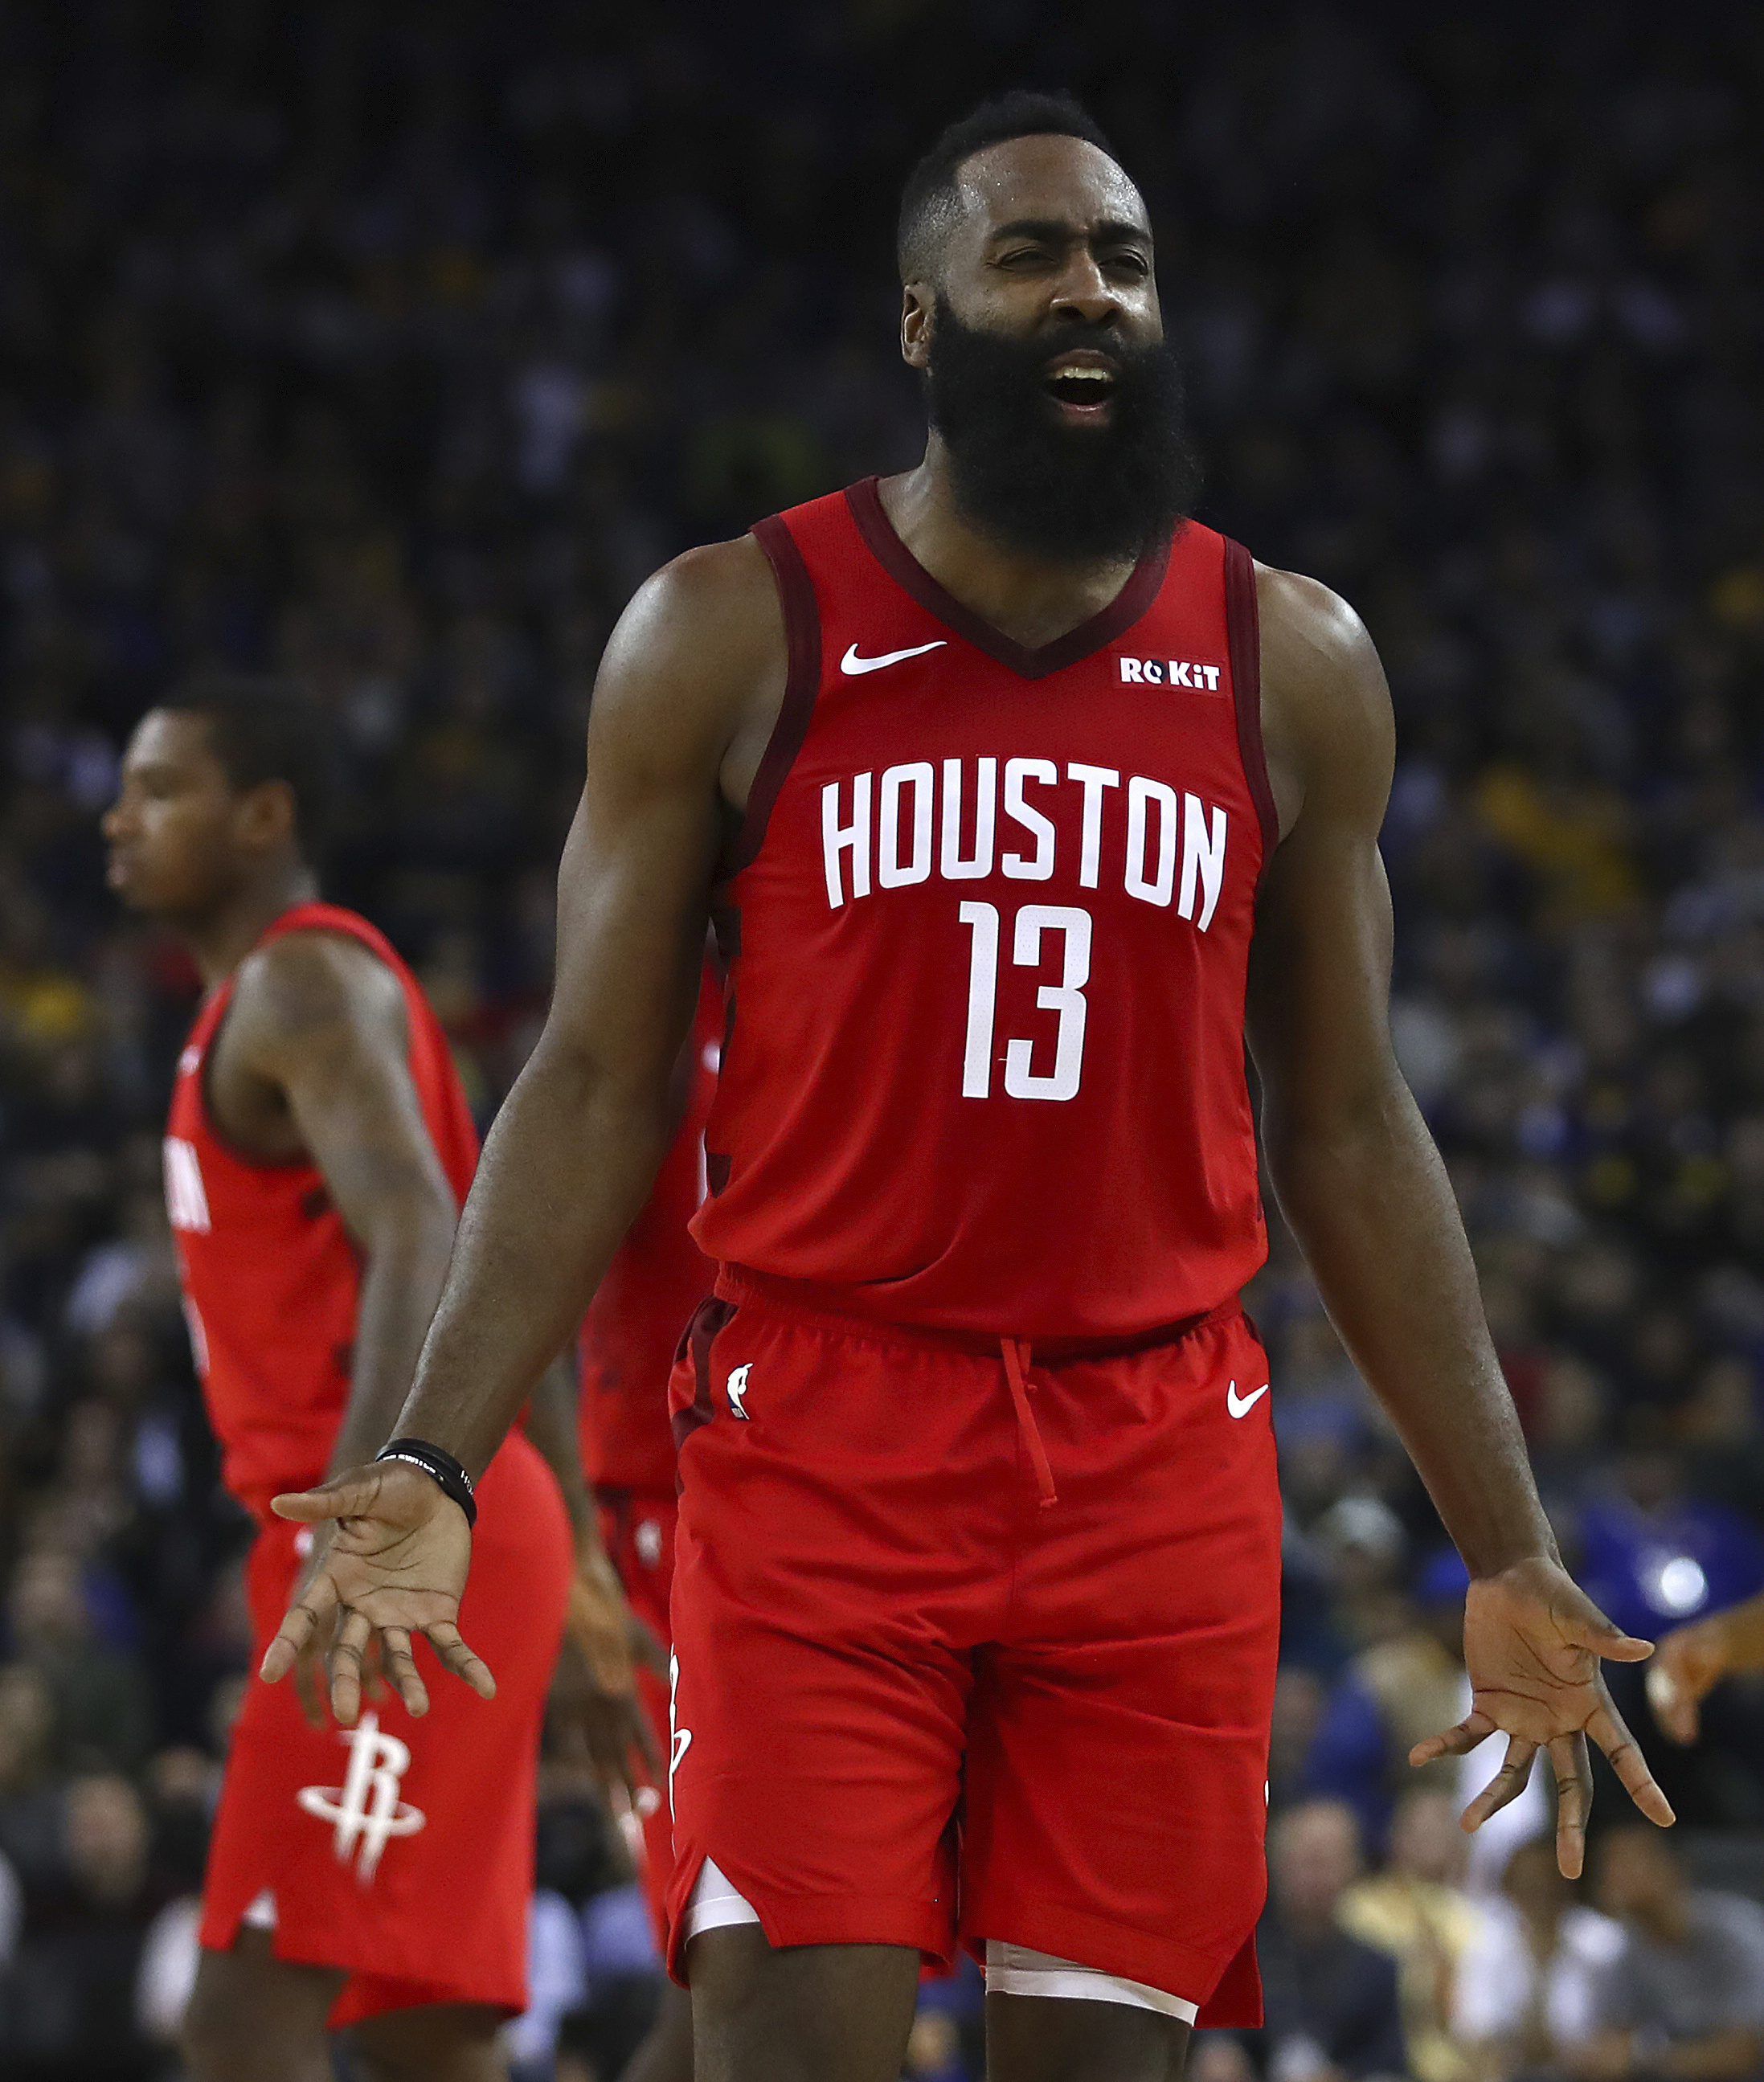 cc1b247a3ee9 Is James Harden the most unstoppable player of this generation ...